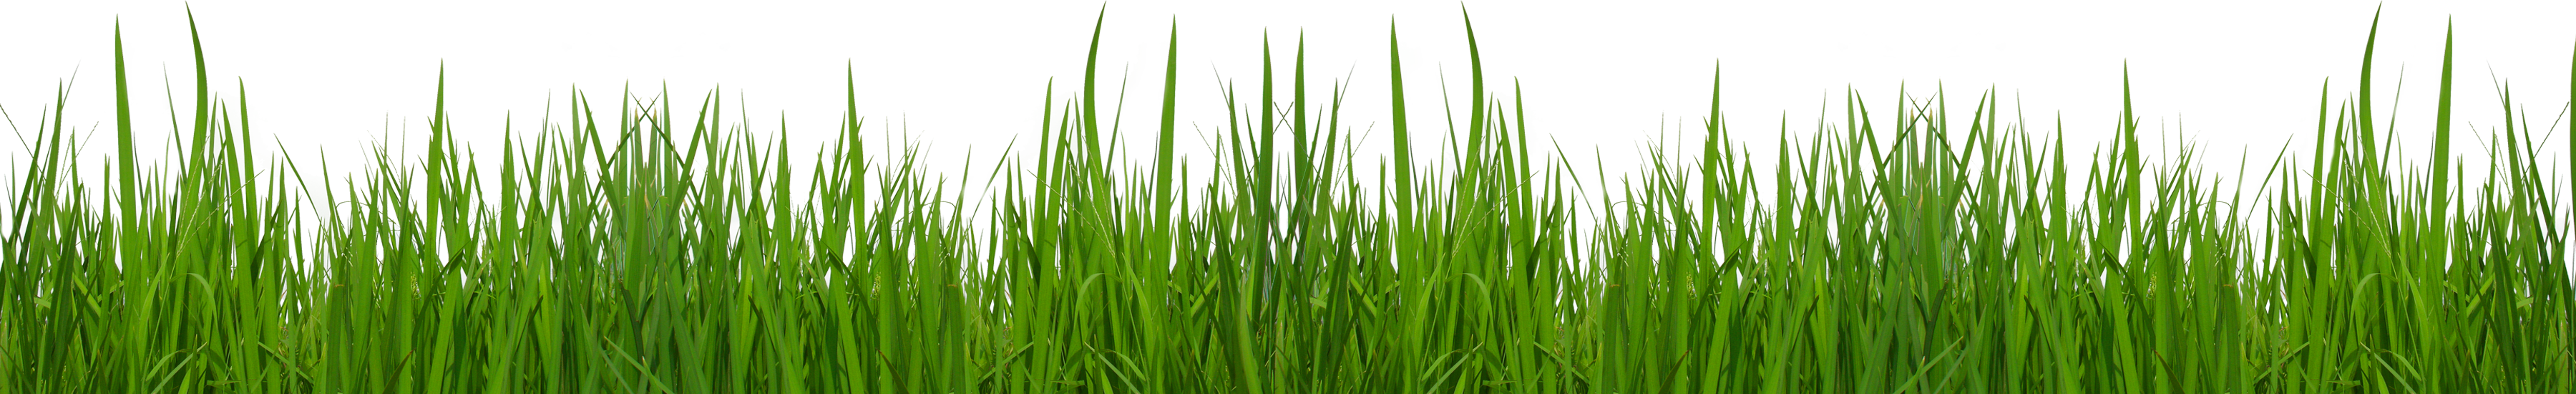 Free Grass Clip Art Pictures-Free grass clip art pictures-2